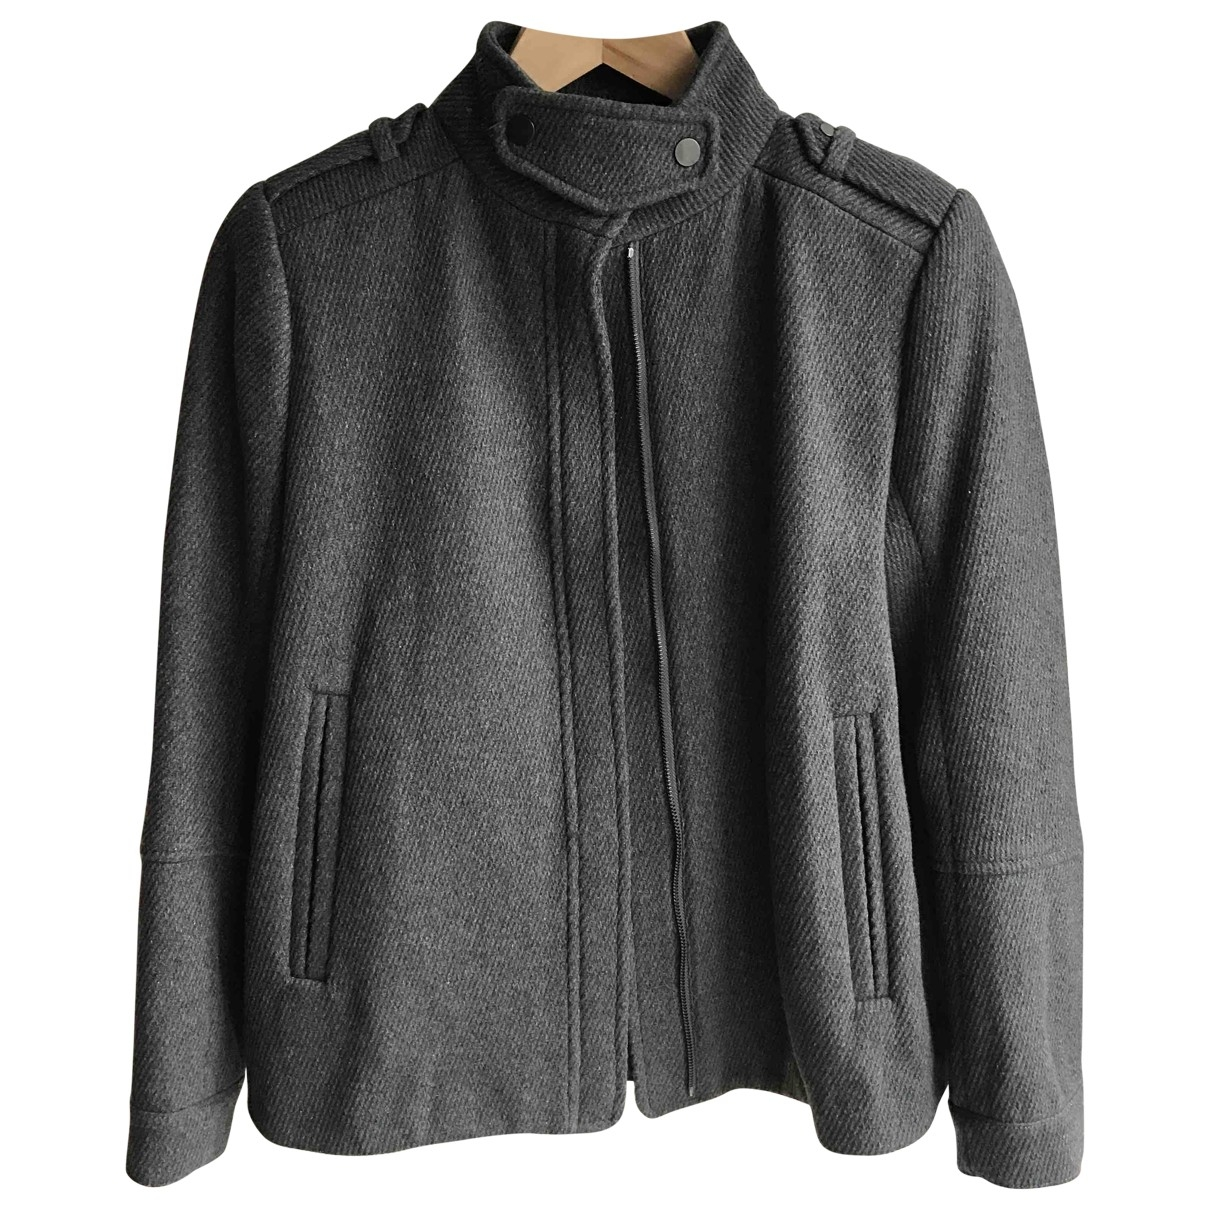 Vince \N Grey Wool jacket for Women 0 0-5